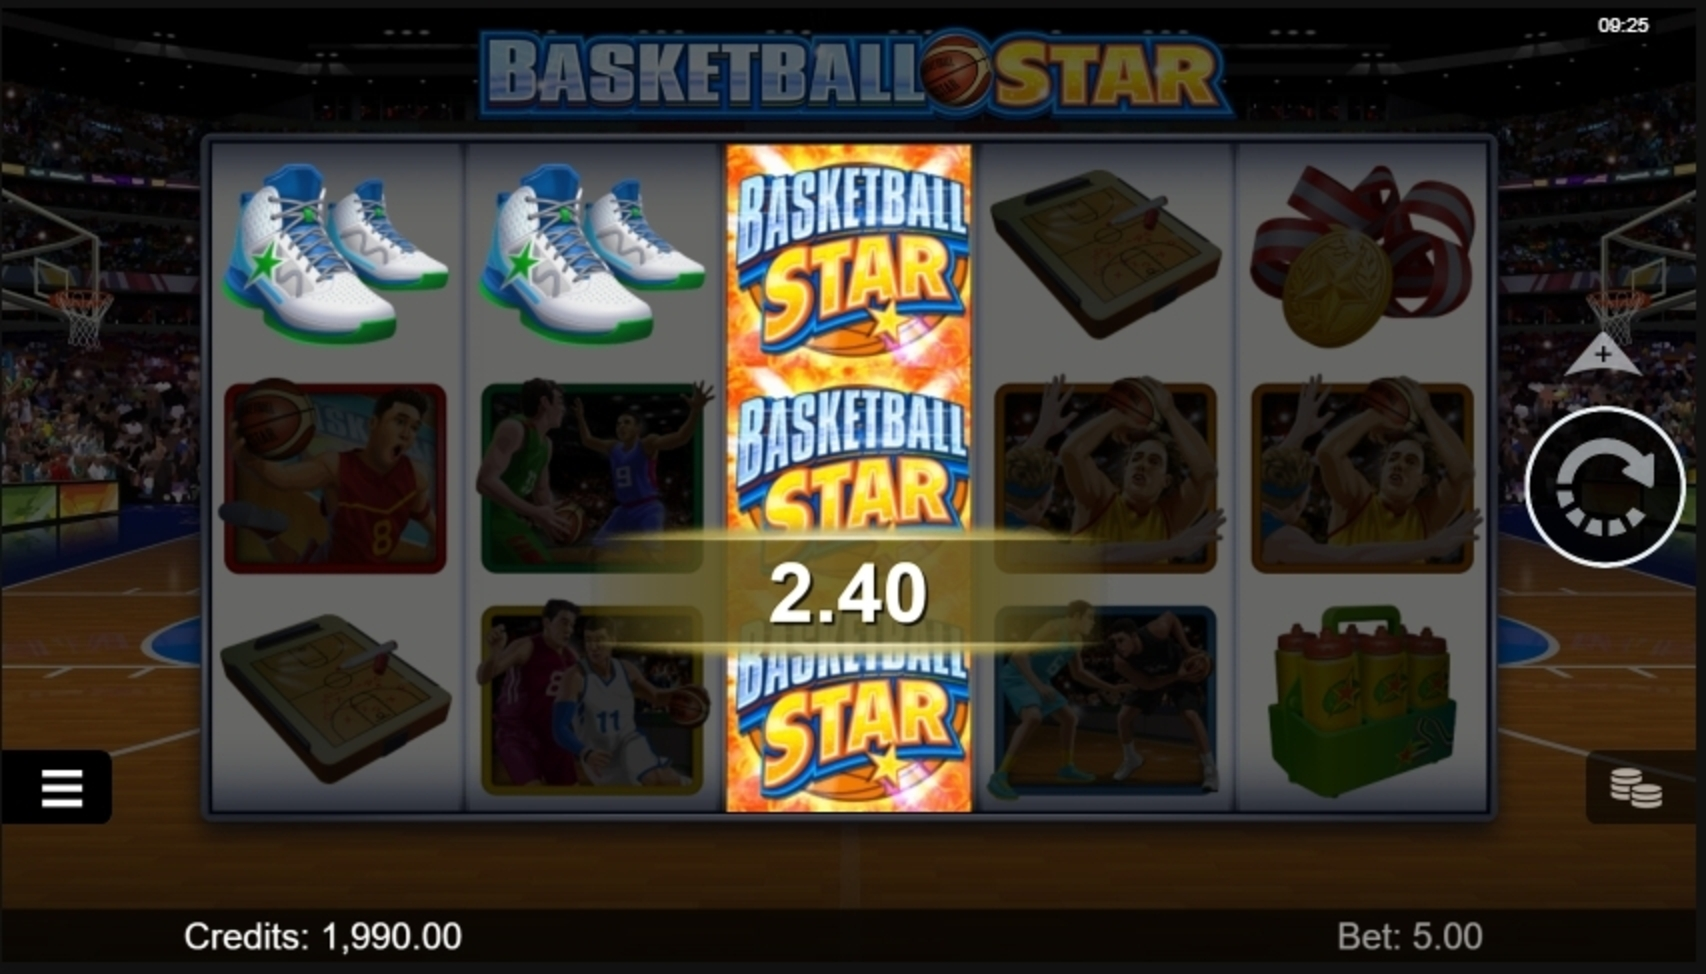 Win Money in Basketball Star Free Slot Game by Microgaming